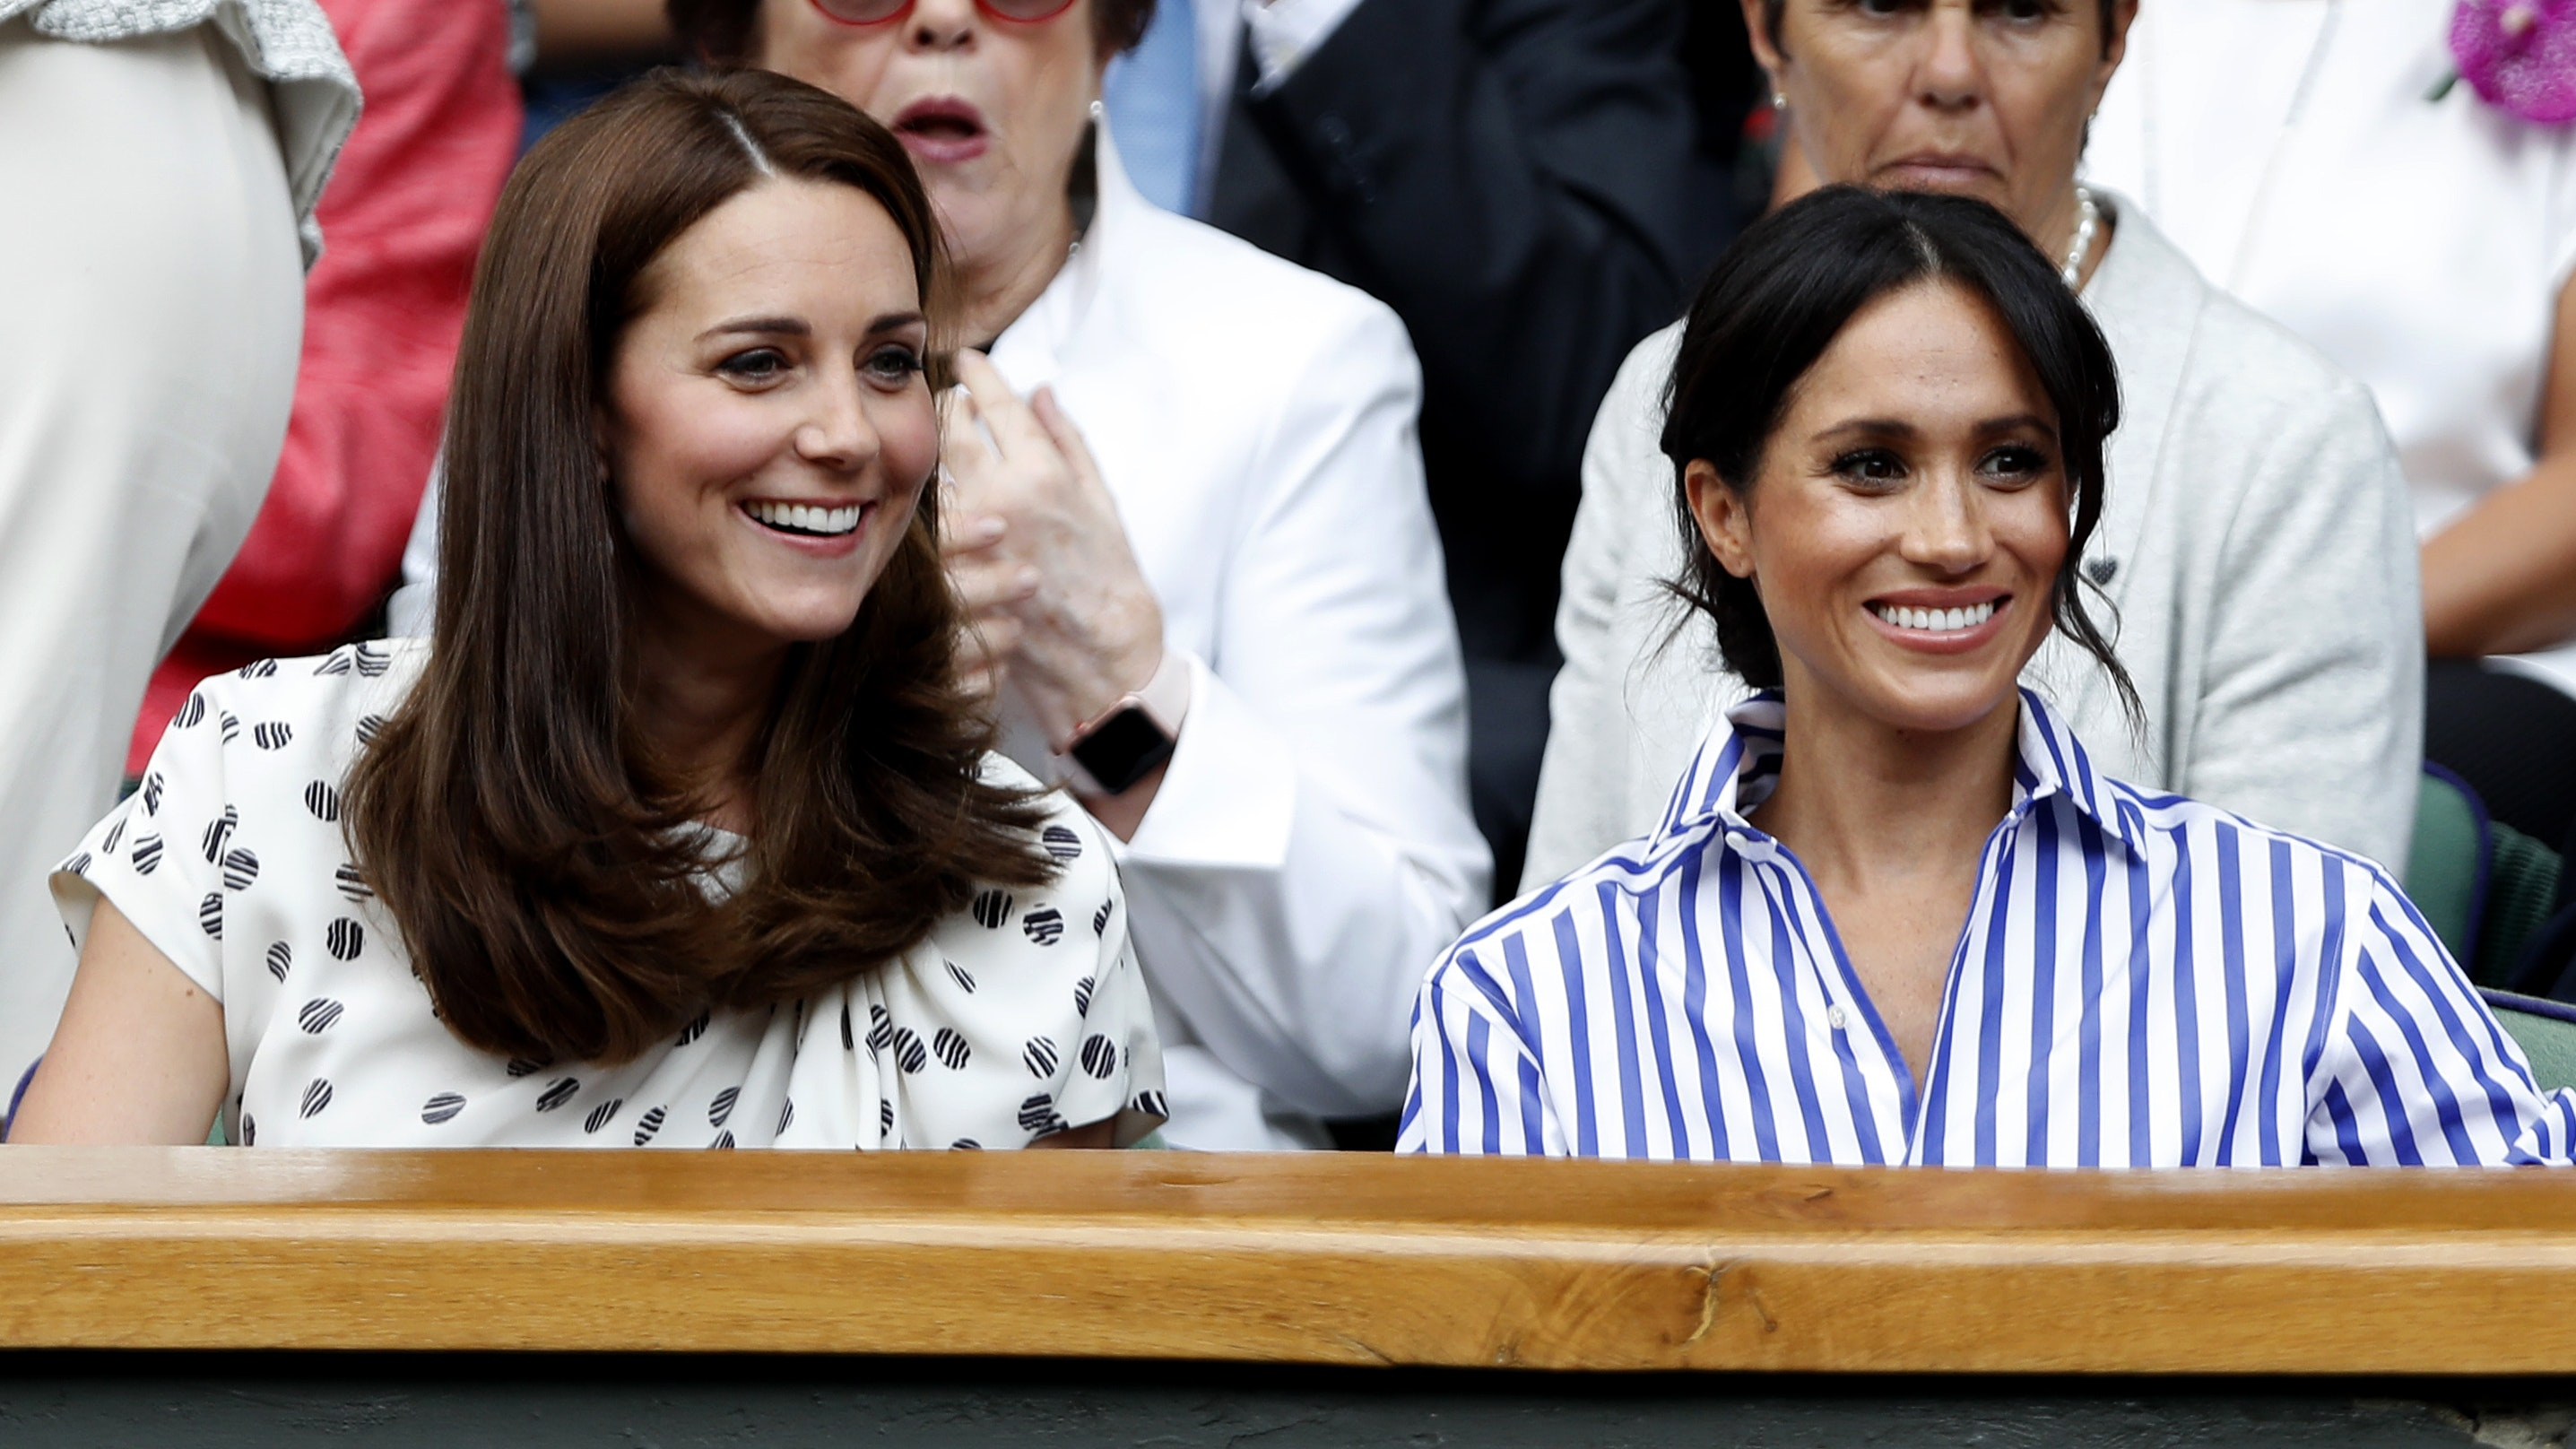 The sweet story behind this photo of Kate, Meghan and Pippa